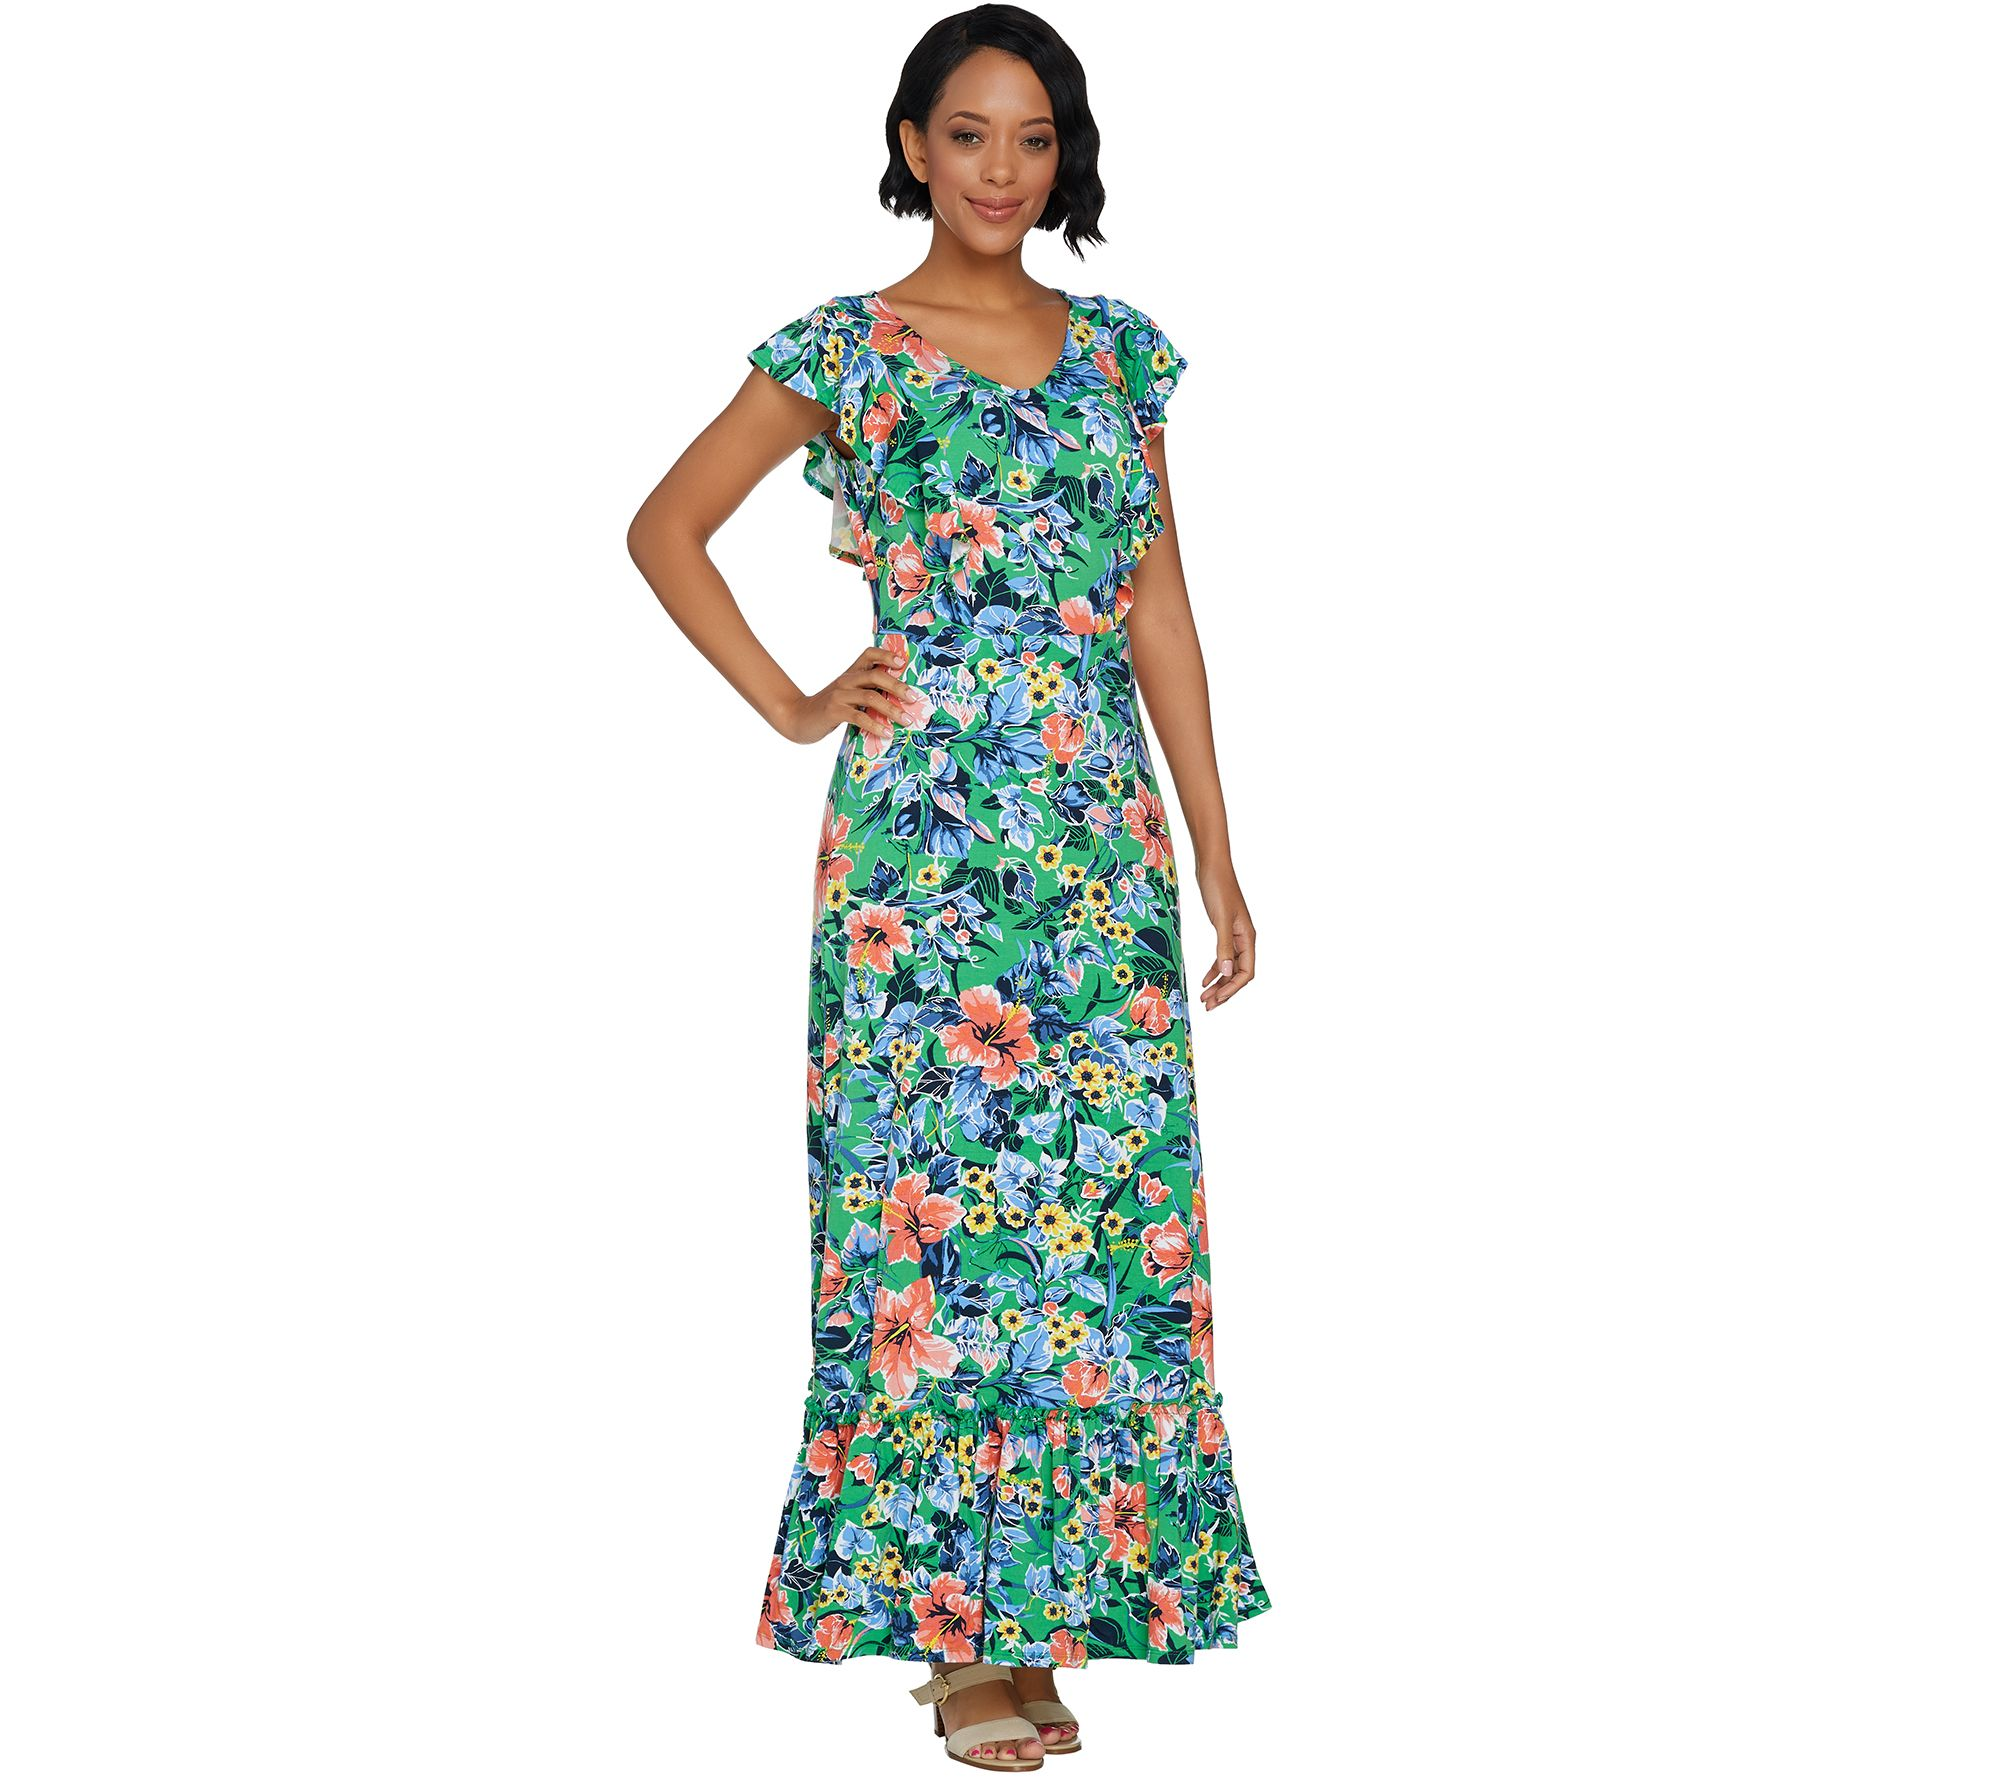 1b4a92154d1 C. Wonder Regular Tropical Floral Print Knit Maxi Dress - Page 1 — QVC.com